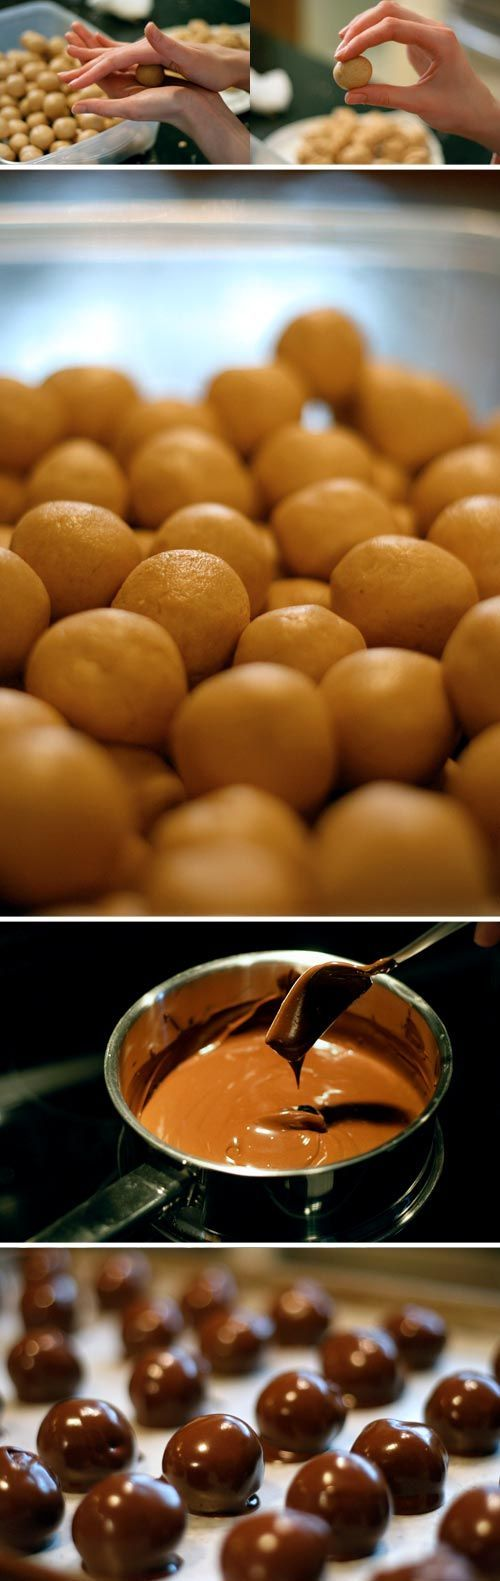 Peanut Butter Balls, it's not Christmas until these are made. #peanutbutter #recipe